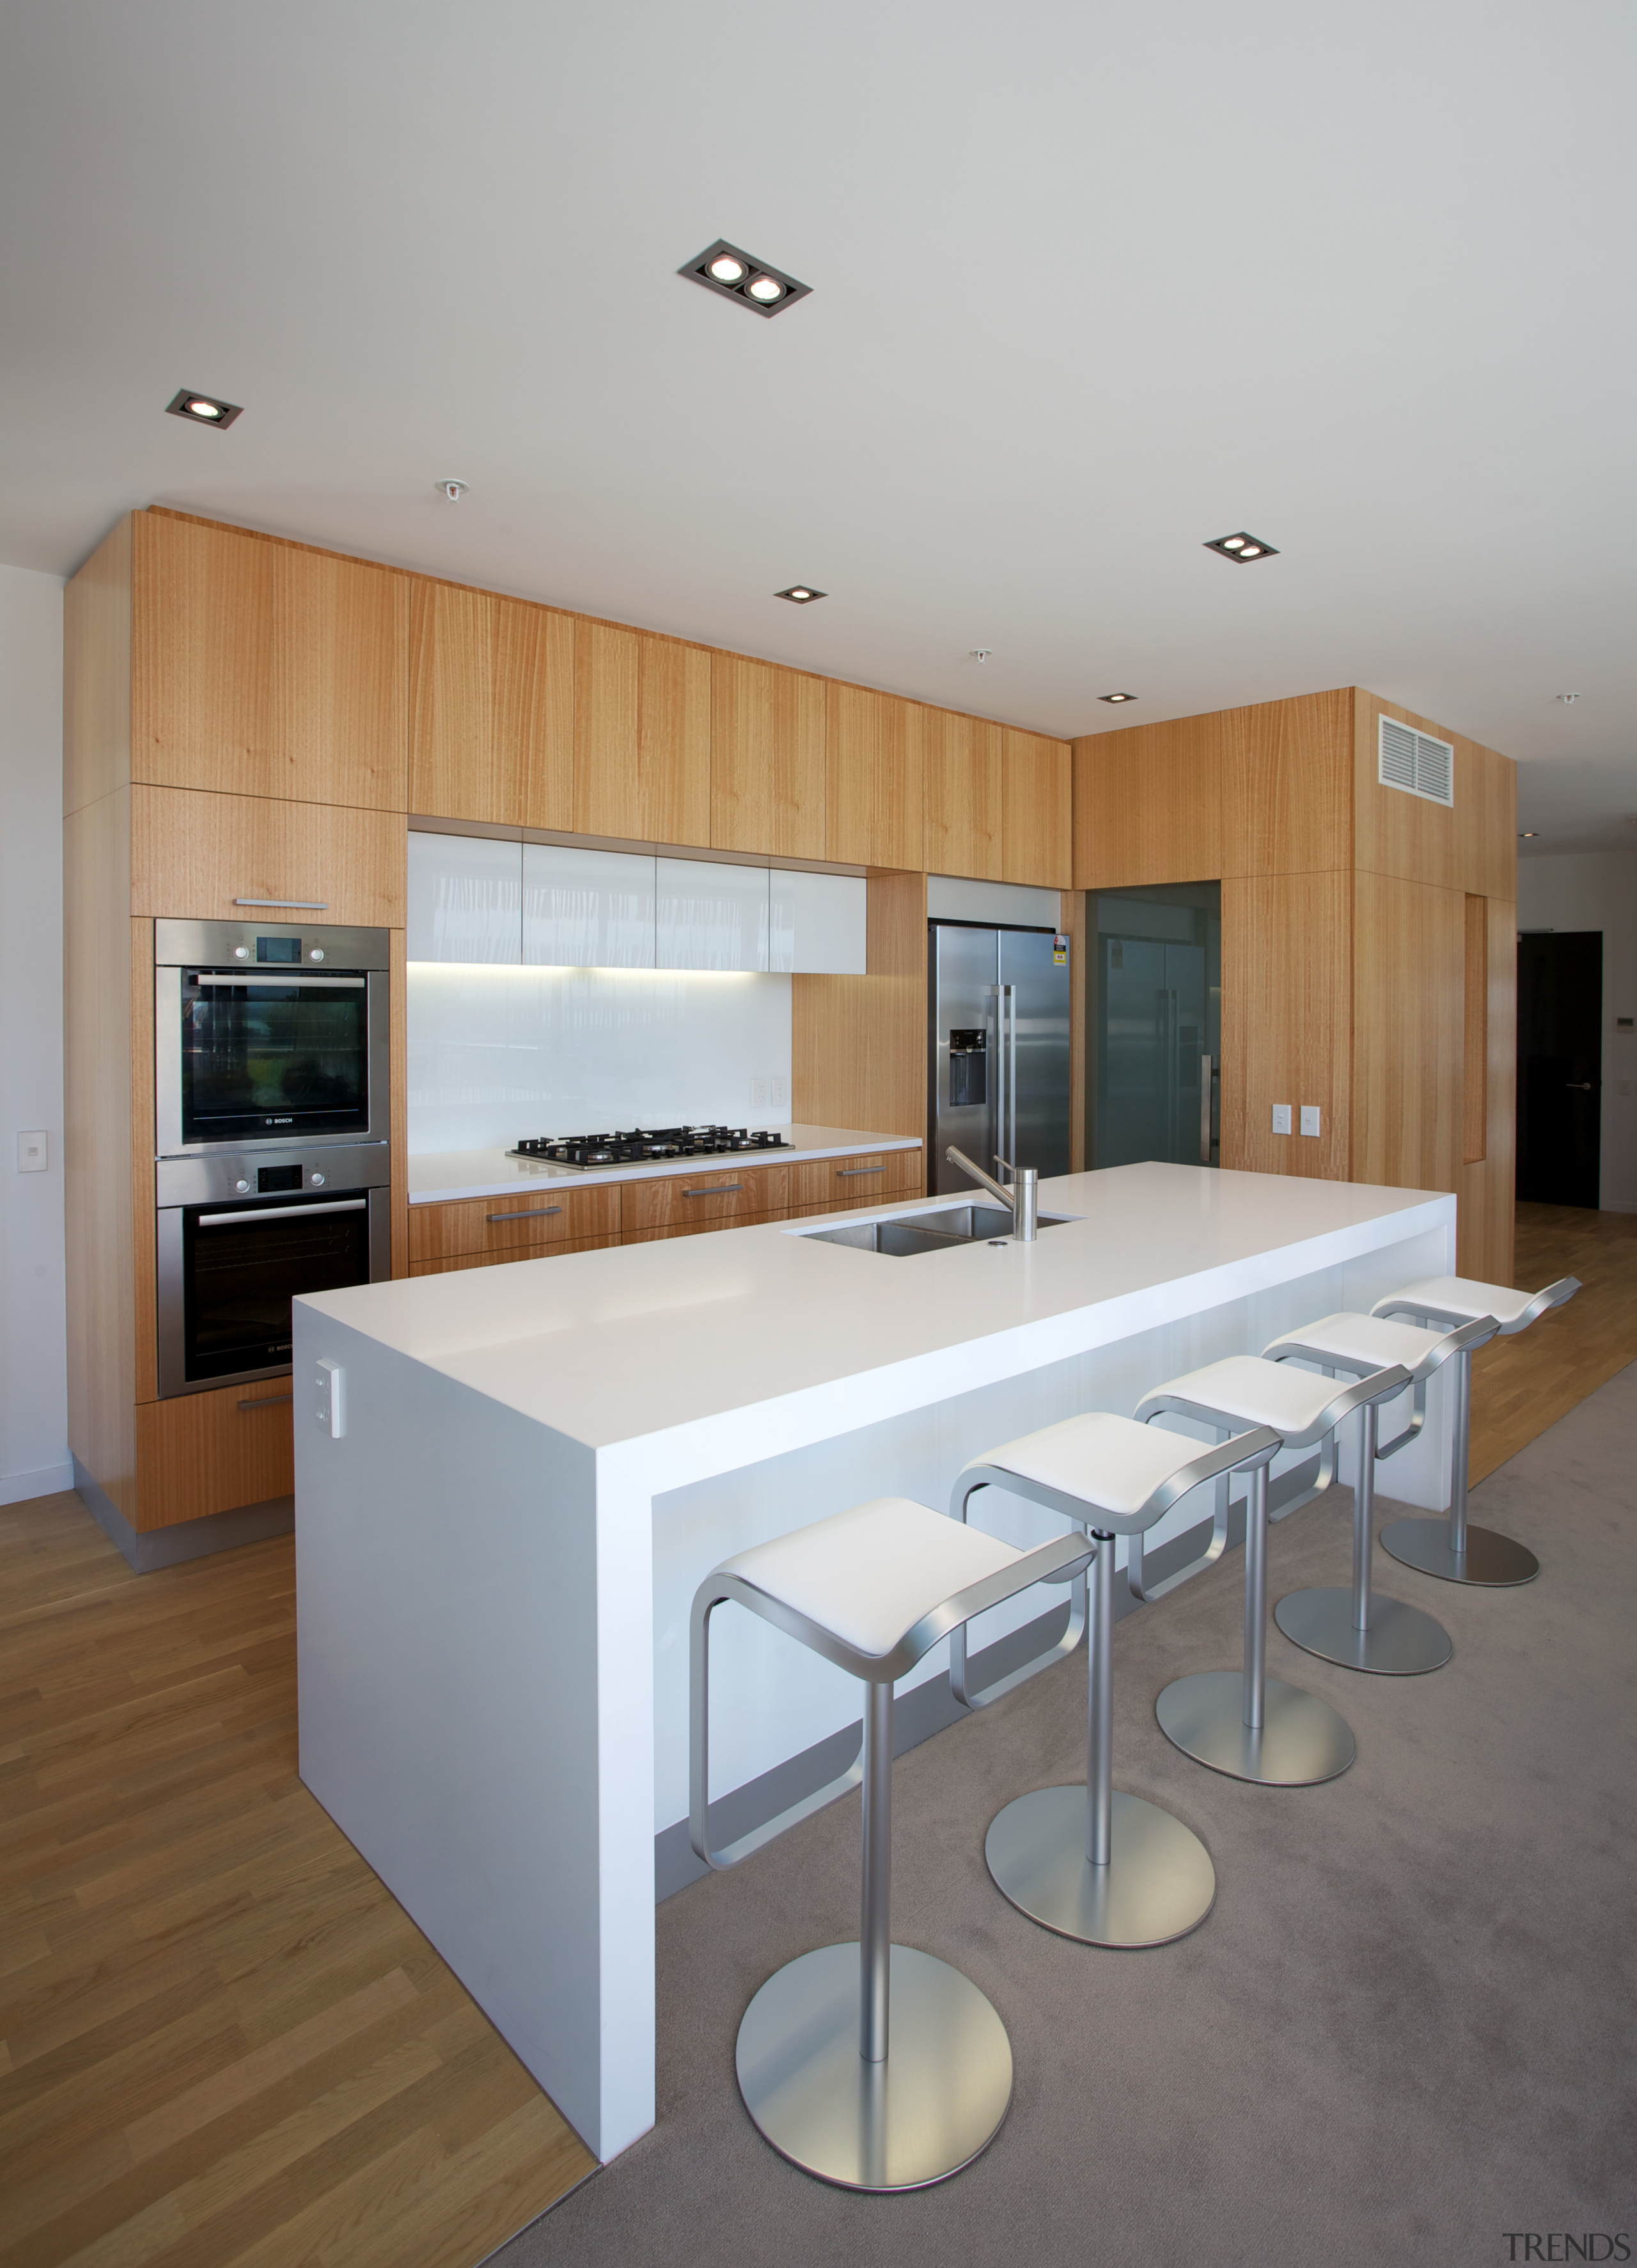 Each penthouse in this new development by the architecture, cabinetry, countertop, interior design, kitchen, real estate, gray